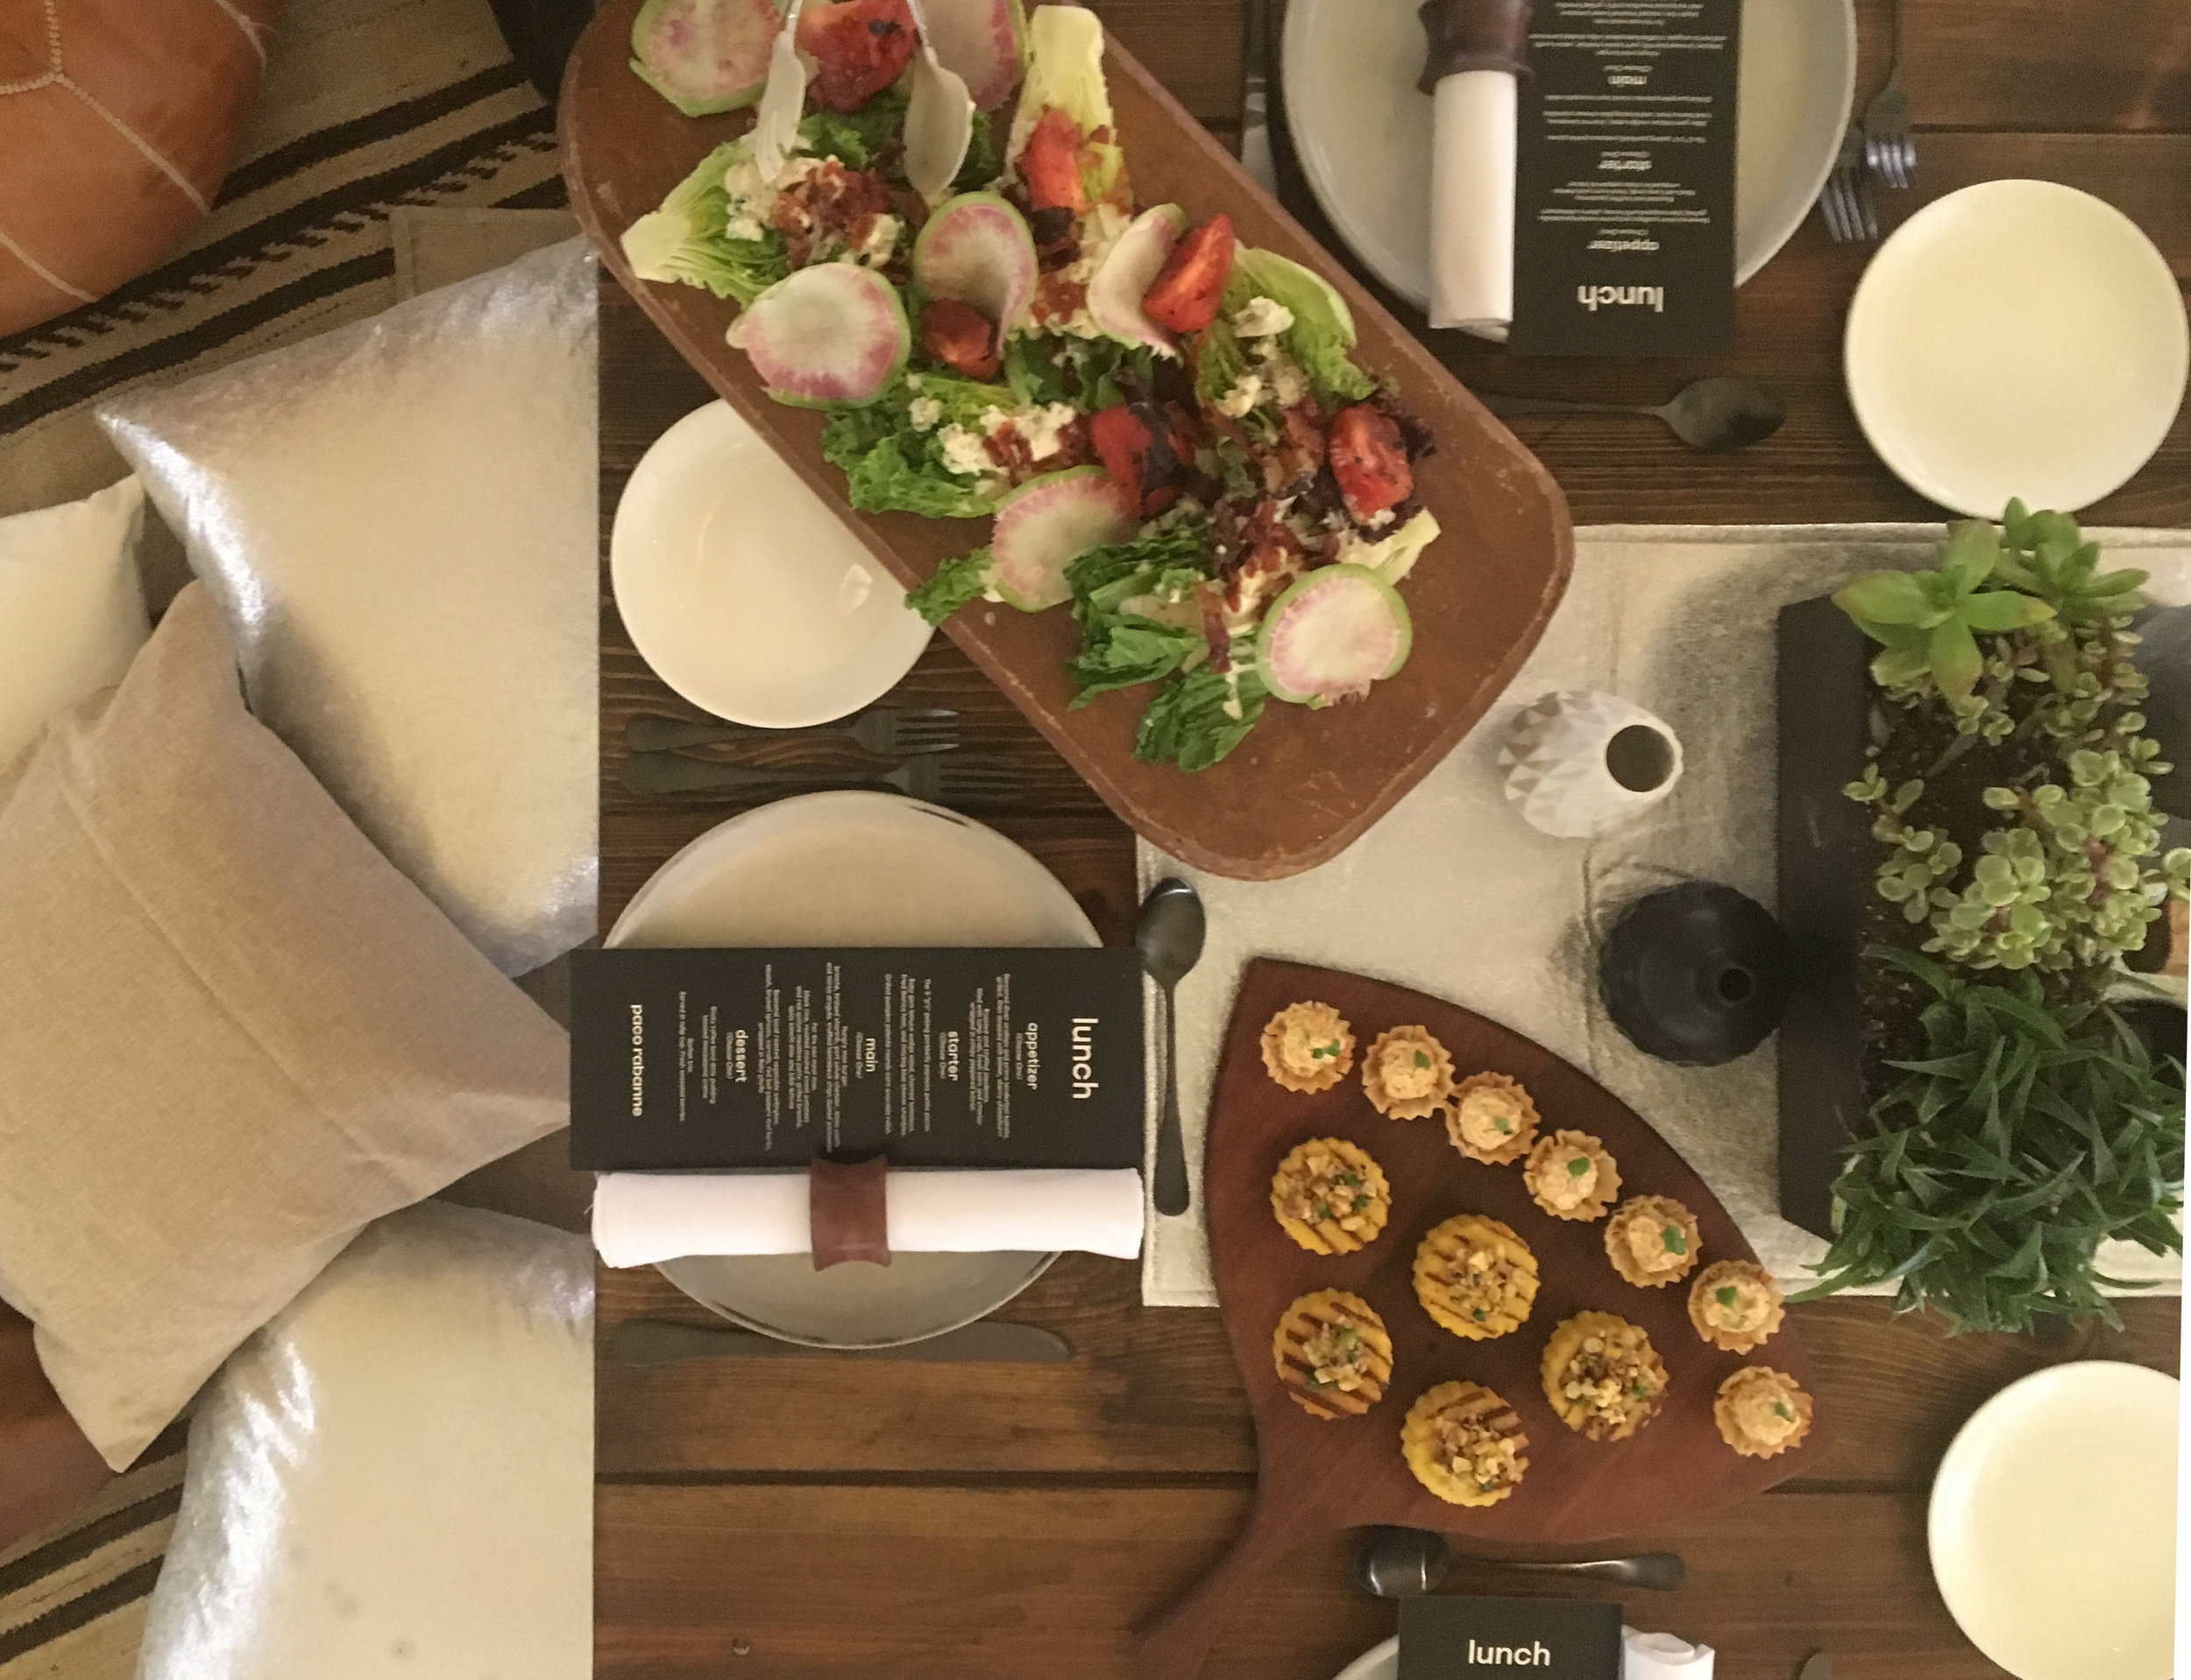 A beautiful spread from New Leaf Catering completes any special event.